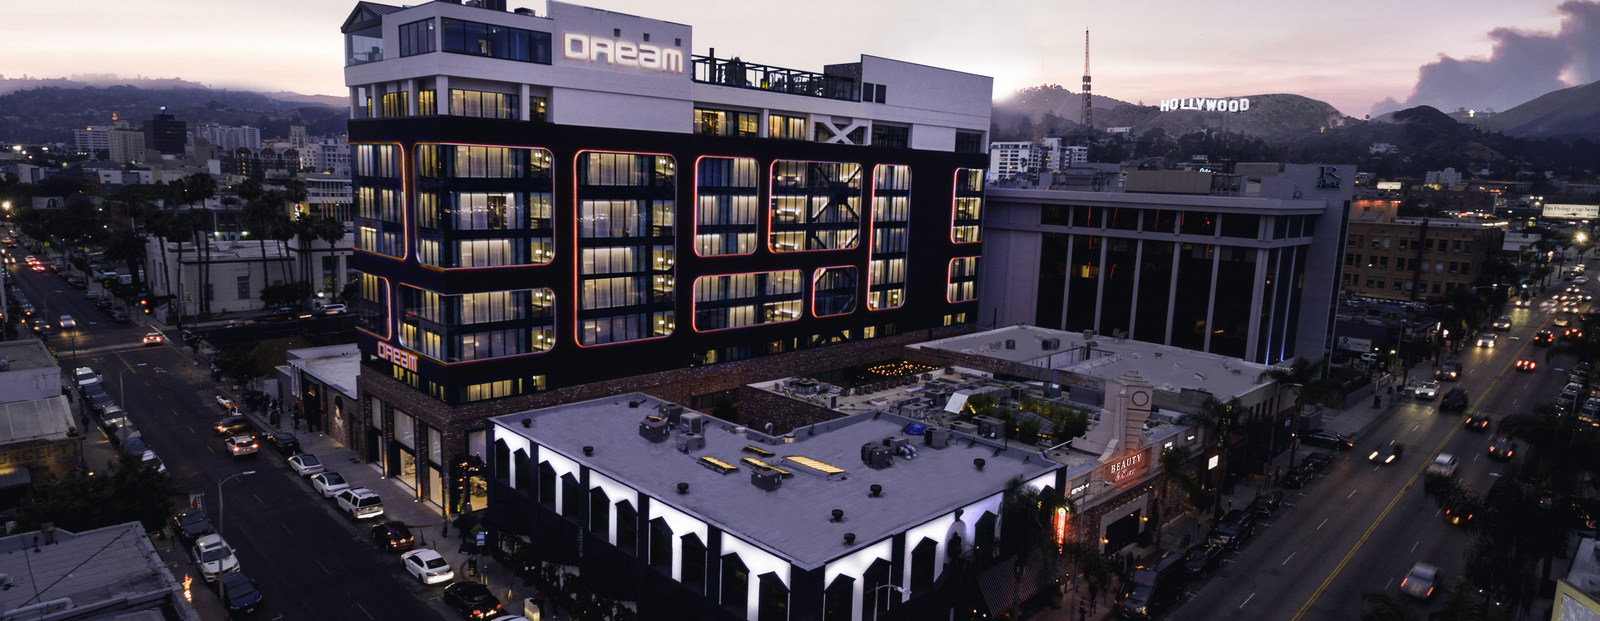 Dream Hotels opens Dream Hotel Los Angeles Hollywood - What's Shakin' week of July 10